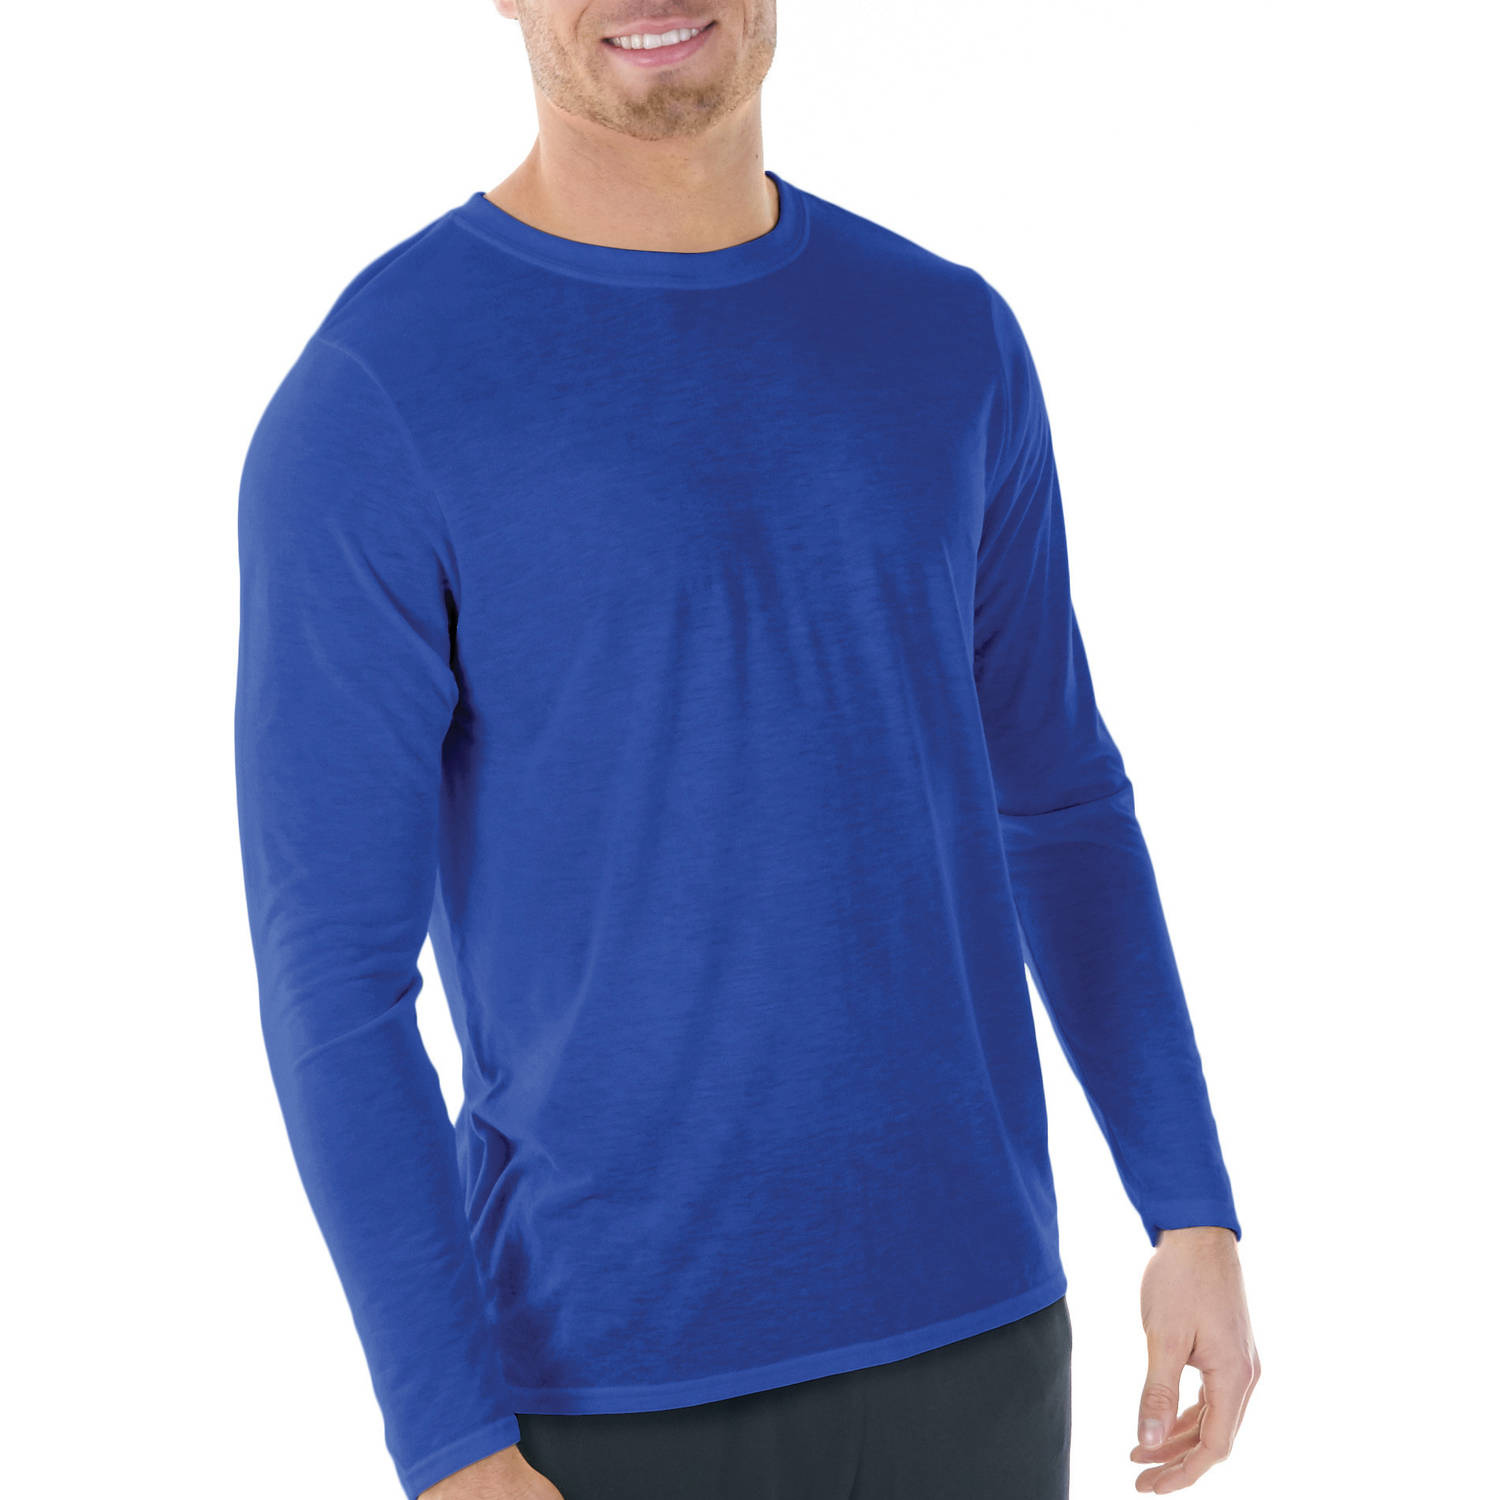 Gildan Mens AquaFX Performance Long Sleeve T-Shirt